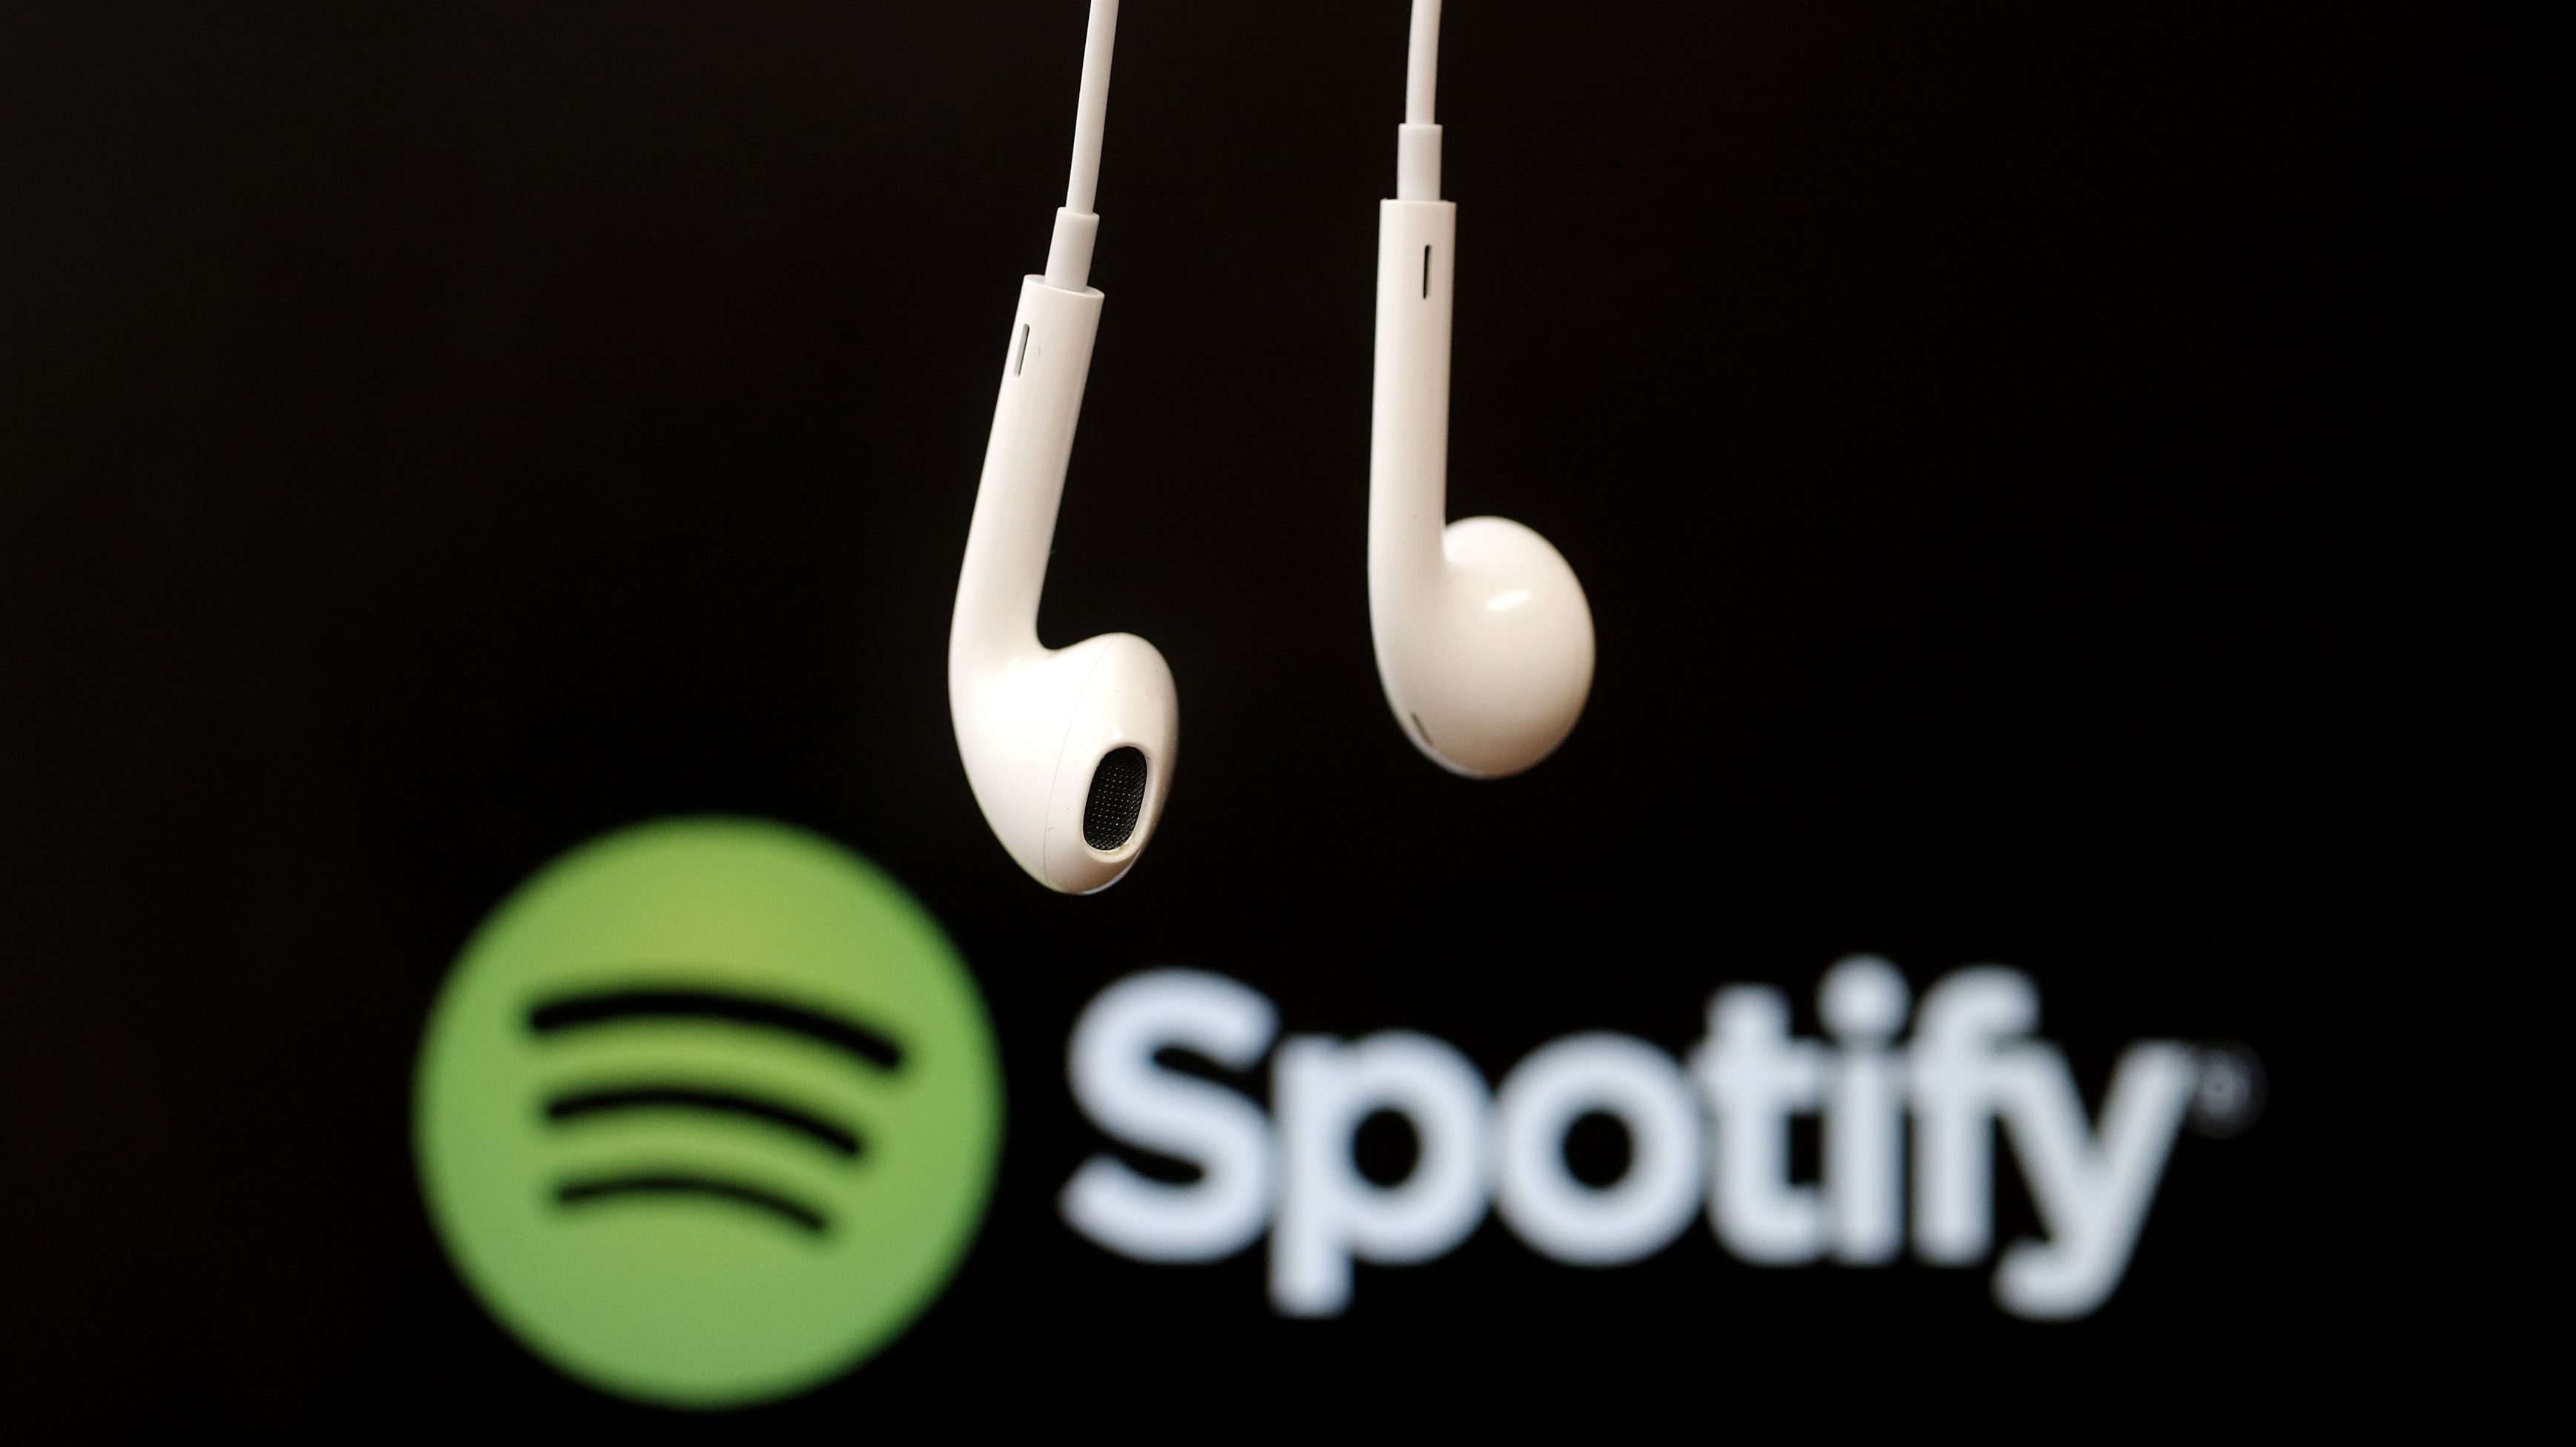 Headphones are seen in front of a logo of online music streaming service Spotify in this illustration picture taken in Strasbourg, February 18, 2014. Spotify is recruiting a U.S. financial reporting specialist, adding to speculation that the Swedish start-up is preparing for a share listing, which one banker said could value the firm at as much as $8 billion. REUTERS/Christian Hartmann (FRANCE - Tags: BUSINESS ENTERTAINMENT LOGO) - GM1EA2I1FZ401